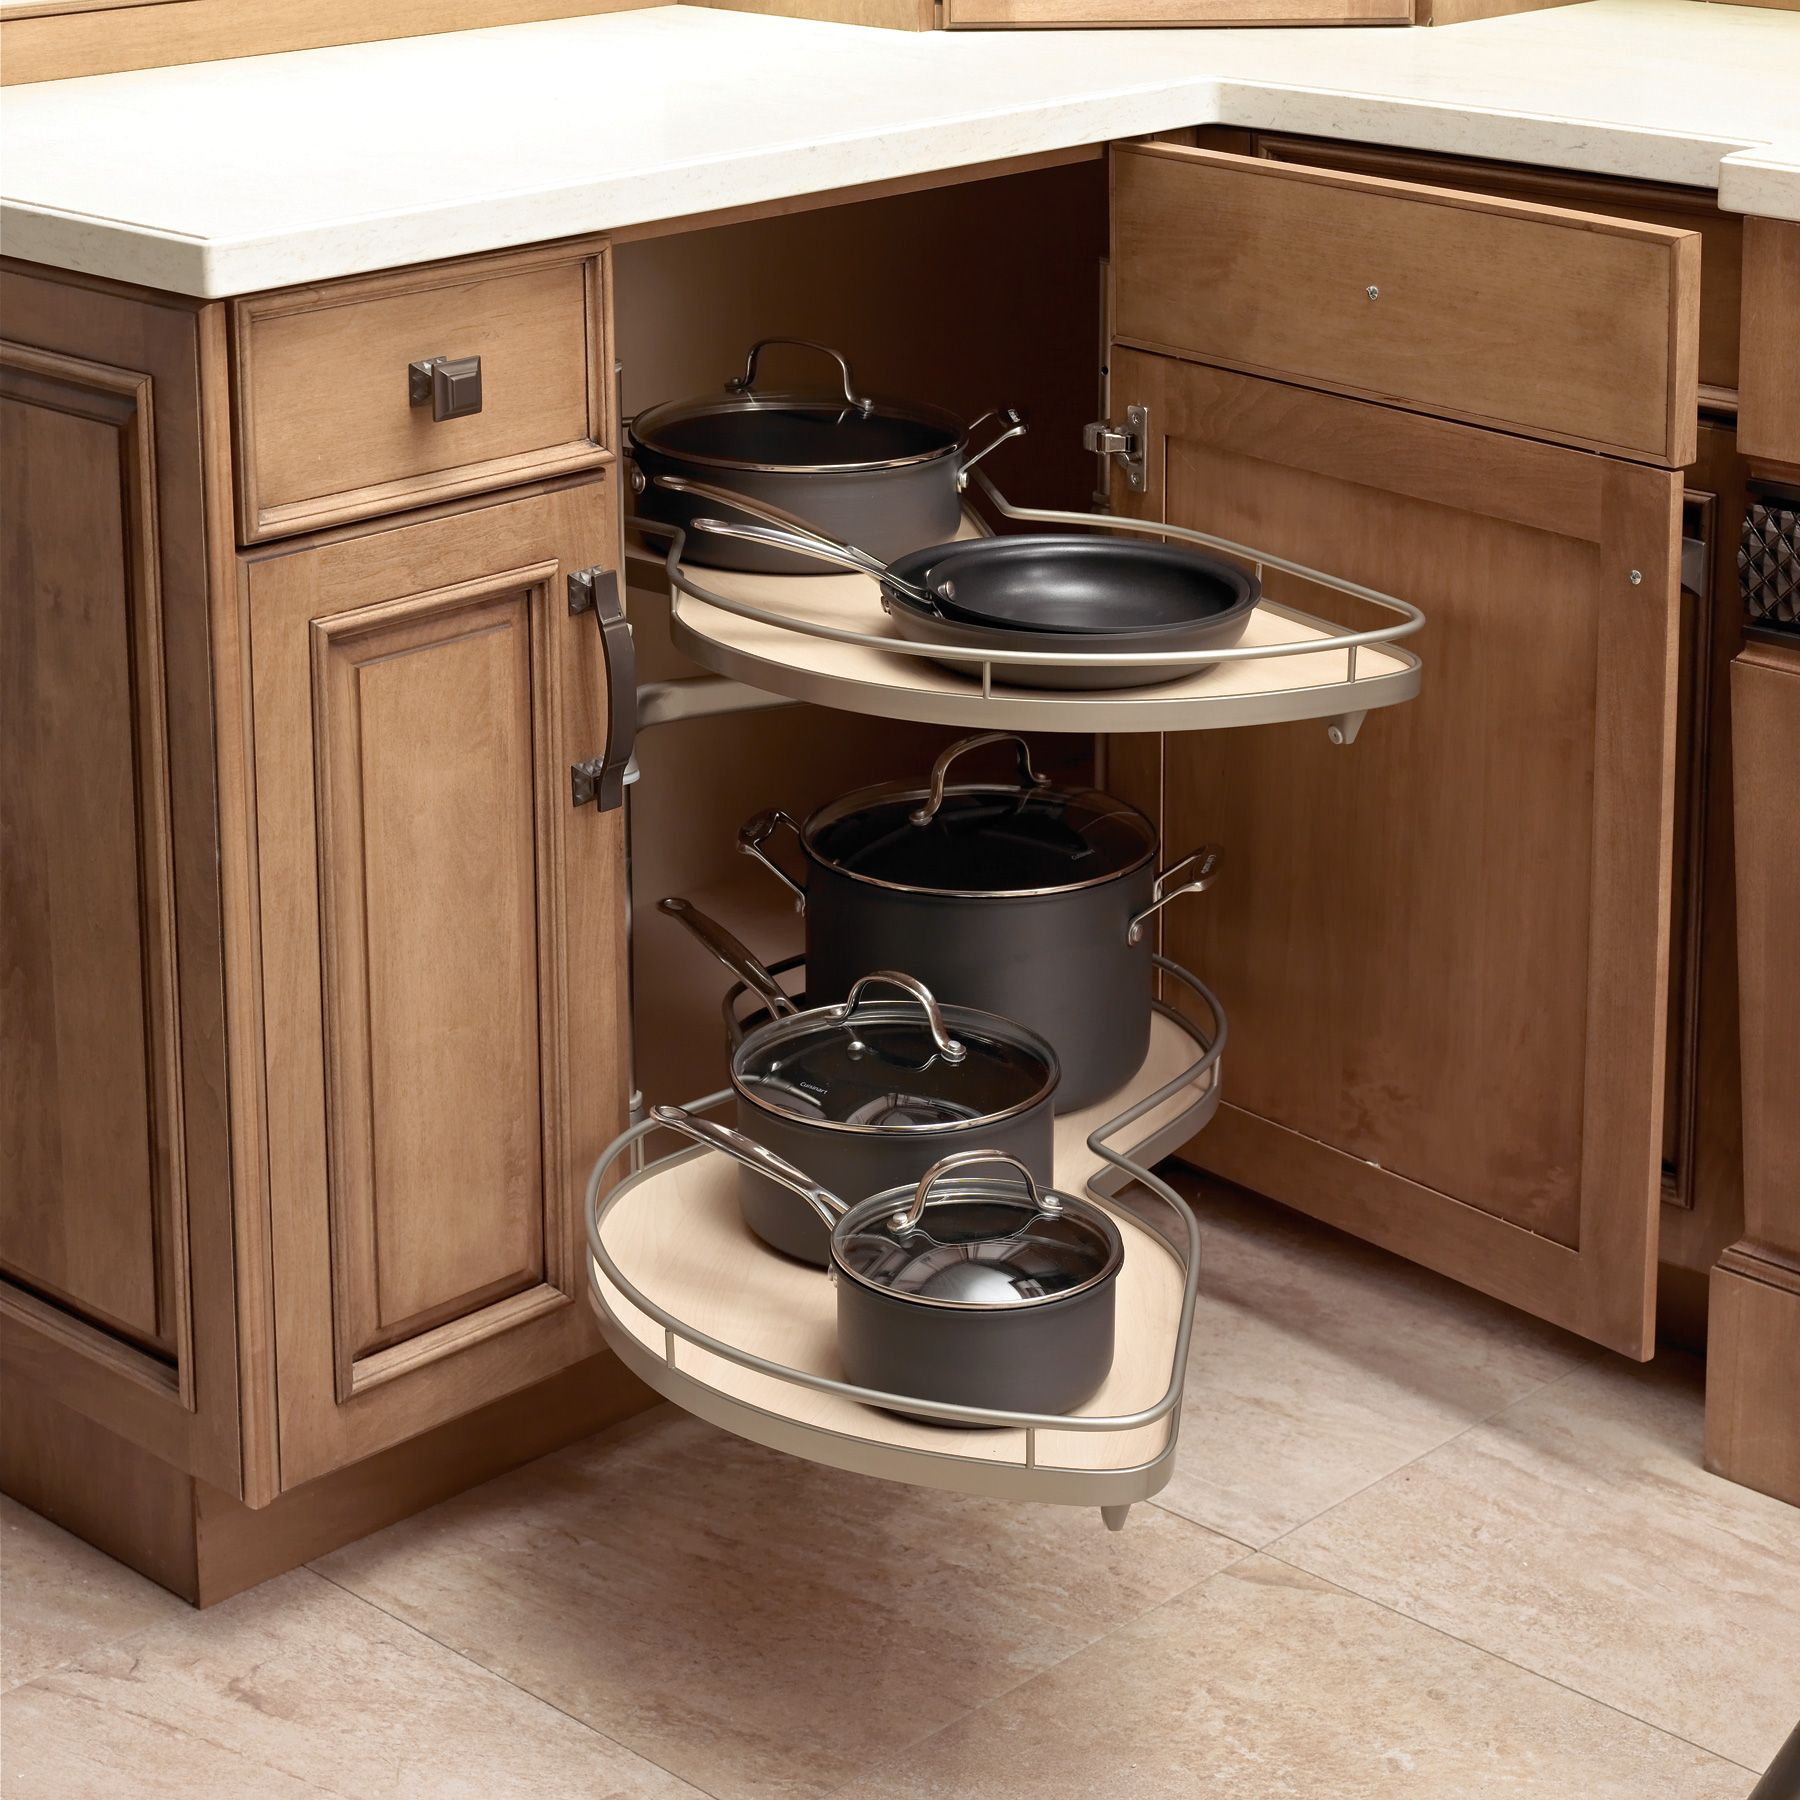 Kitchen Cabinet Accessories Plain Fancy Corner Kitchen Cabinet Kitchen Cabinet Storage Corner Cabinet Kitchen Storage